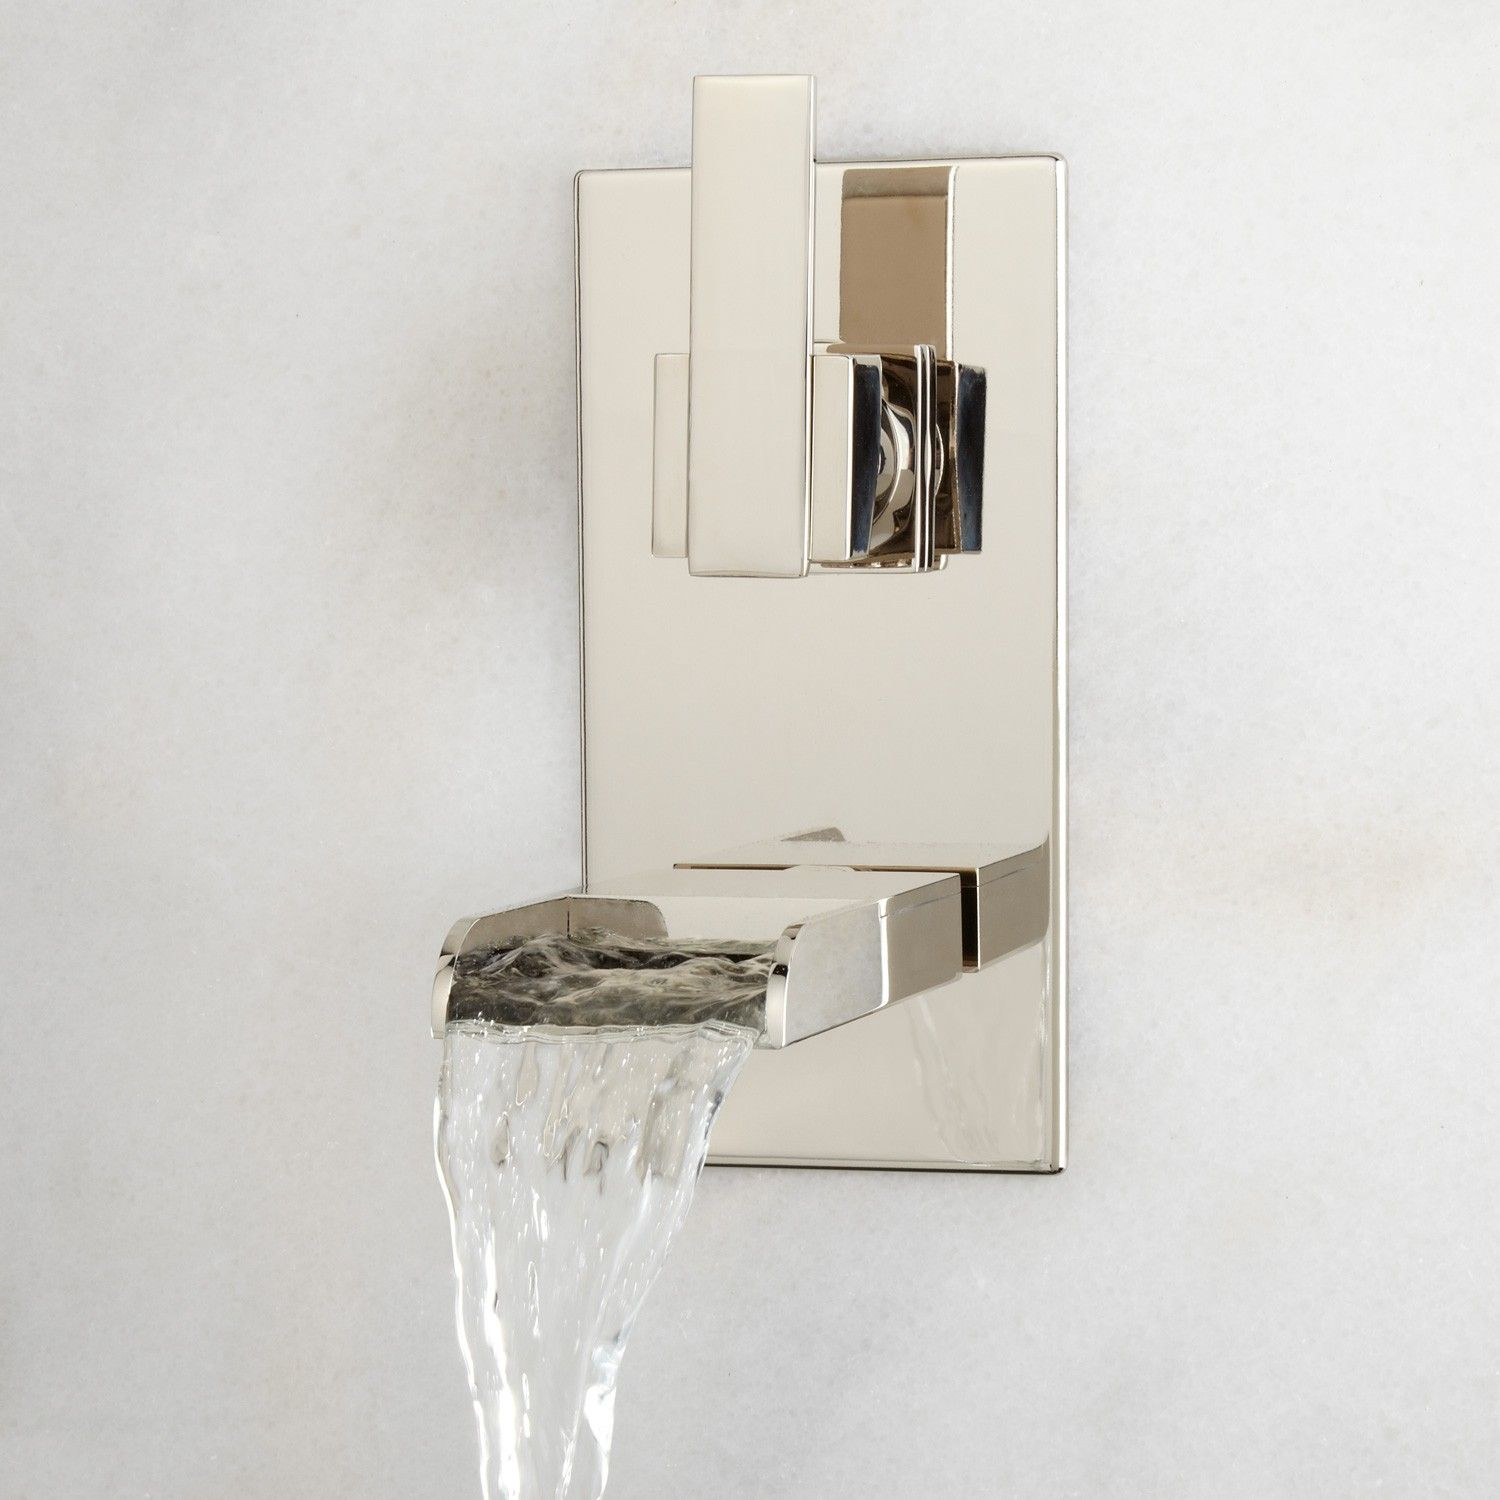 Willis Wall-Mount Bathroom Waterfall Faucet | Broadway/Riverdale ...